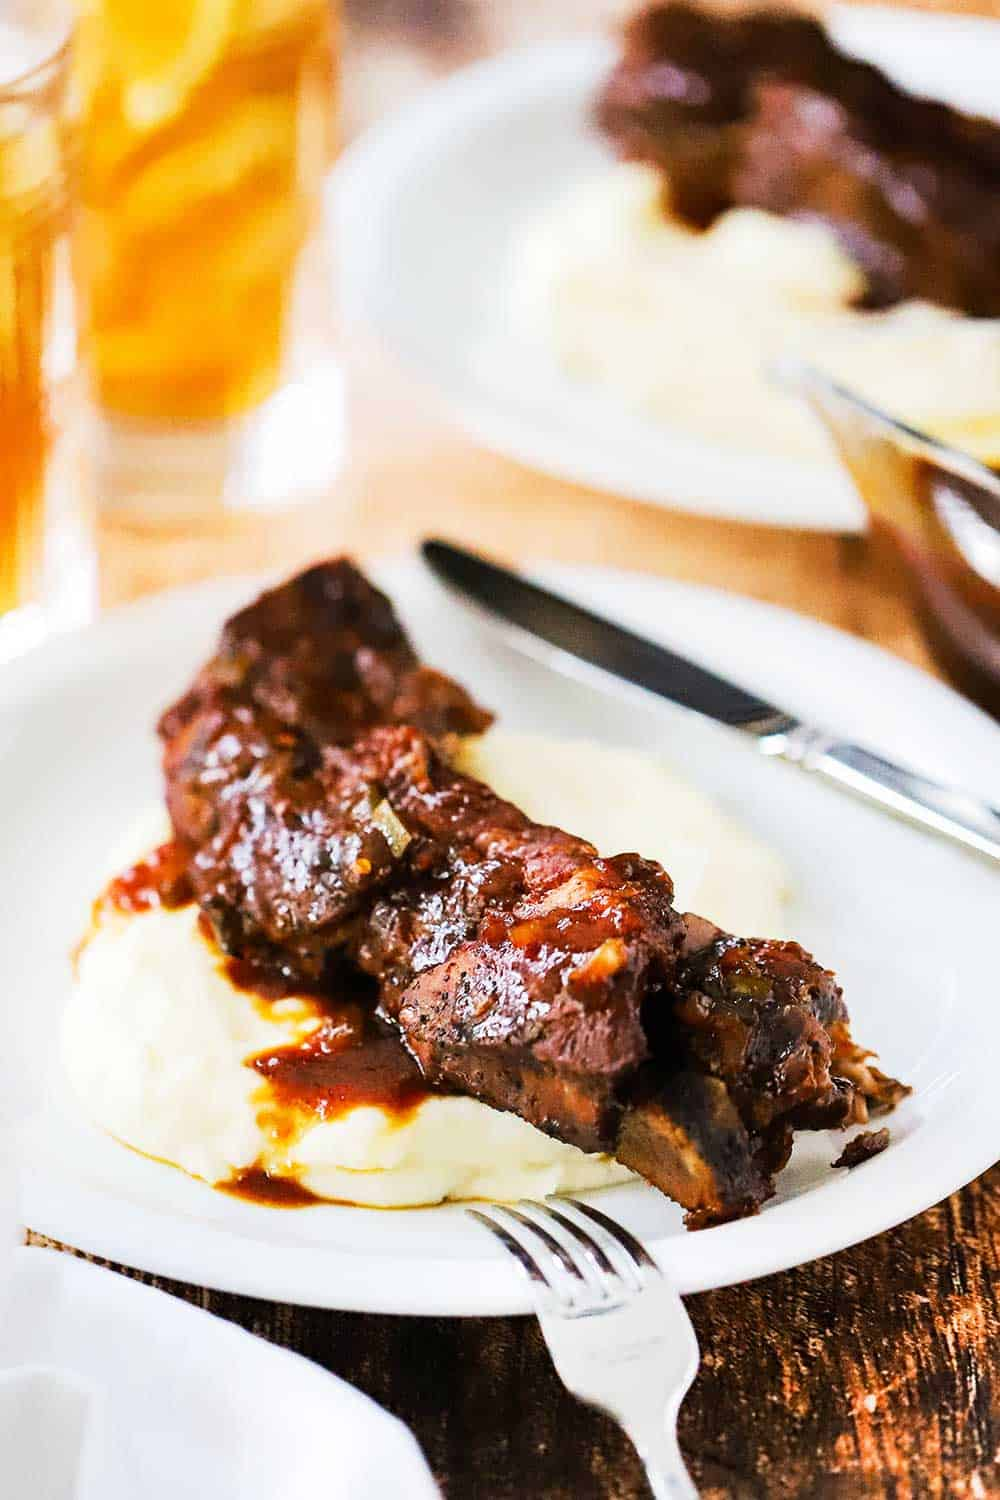 A white plate filled with a serving of mashed potatoes with a country-style ribs and sauce on top of it.